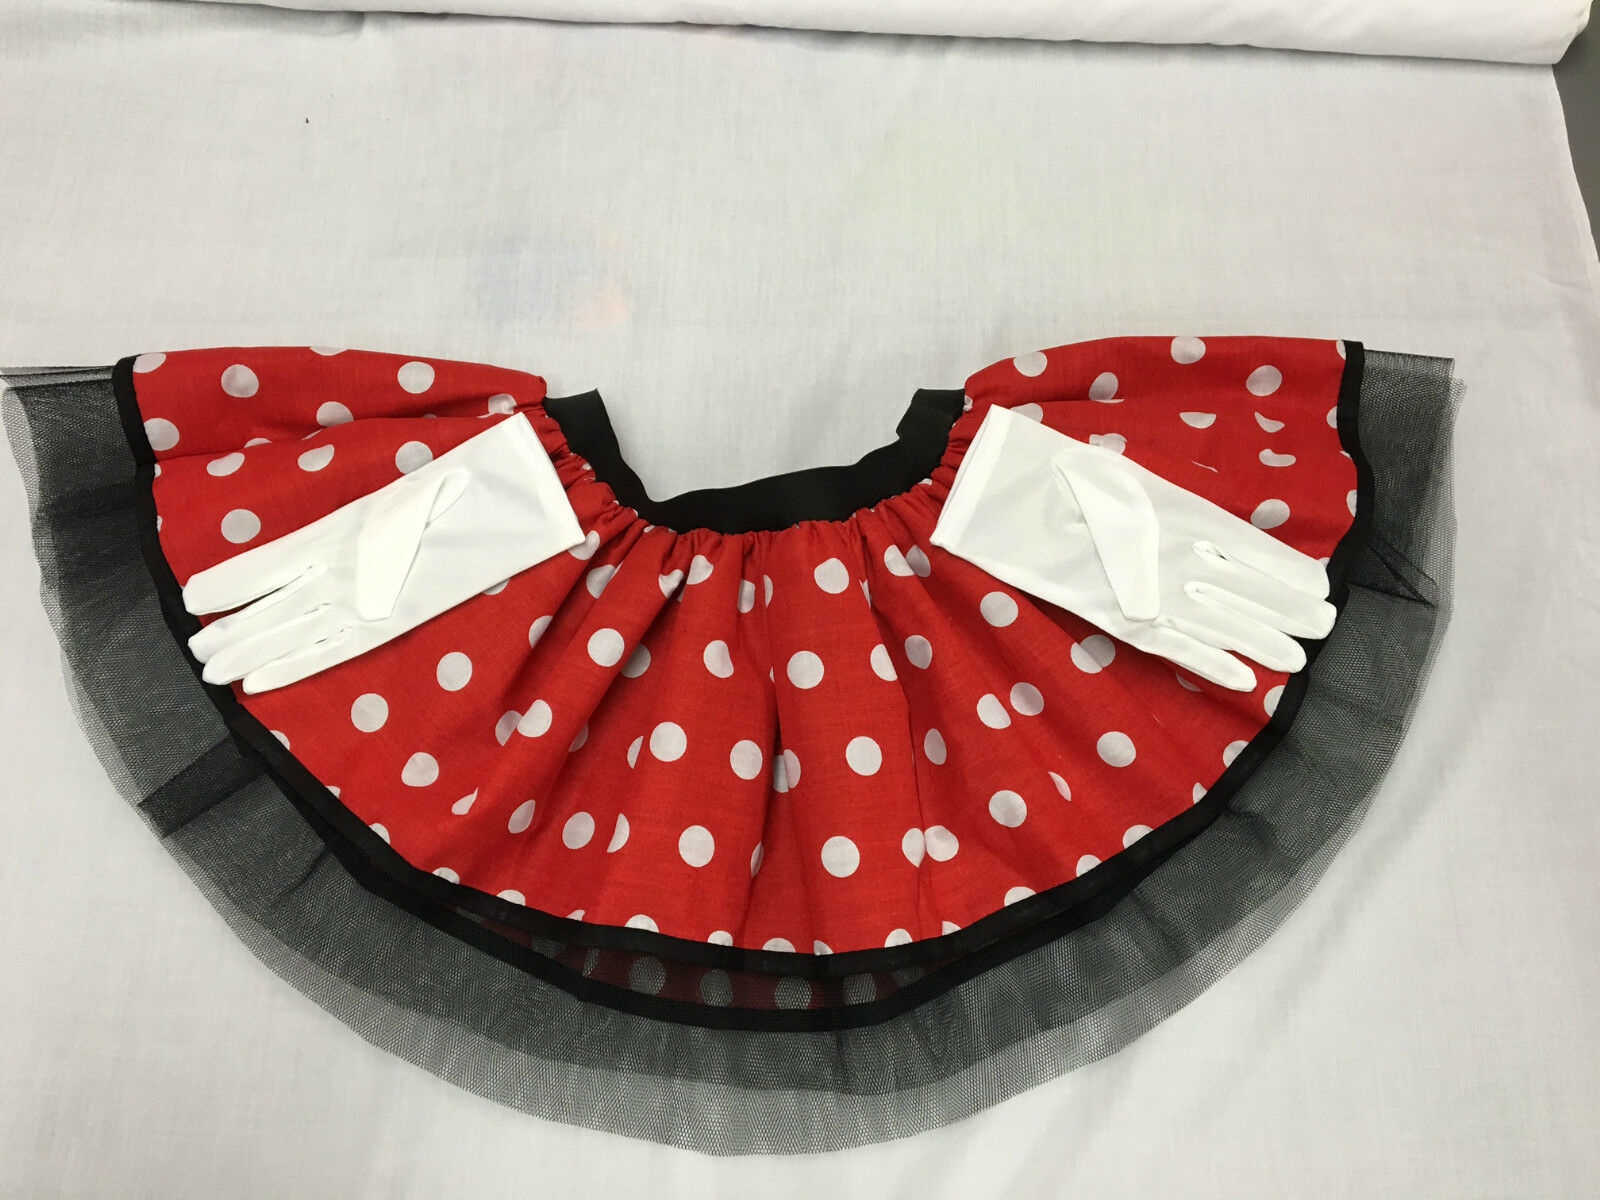 fba903ffe6f9 MINNIE MOUSE SKIRT TUTU EARS HEADBAND BOW RED WHITE POLKA DOT 80S FANCY  DRESS